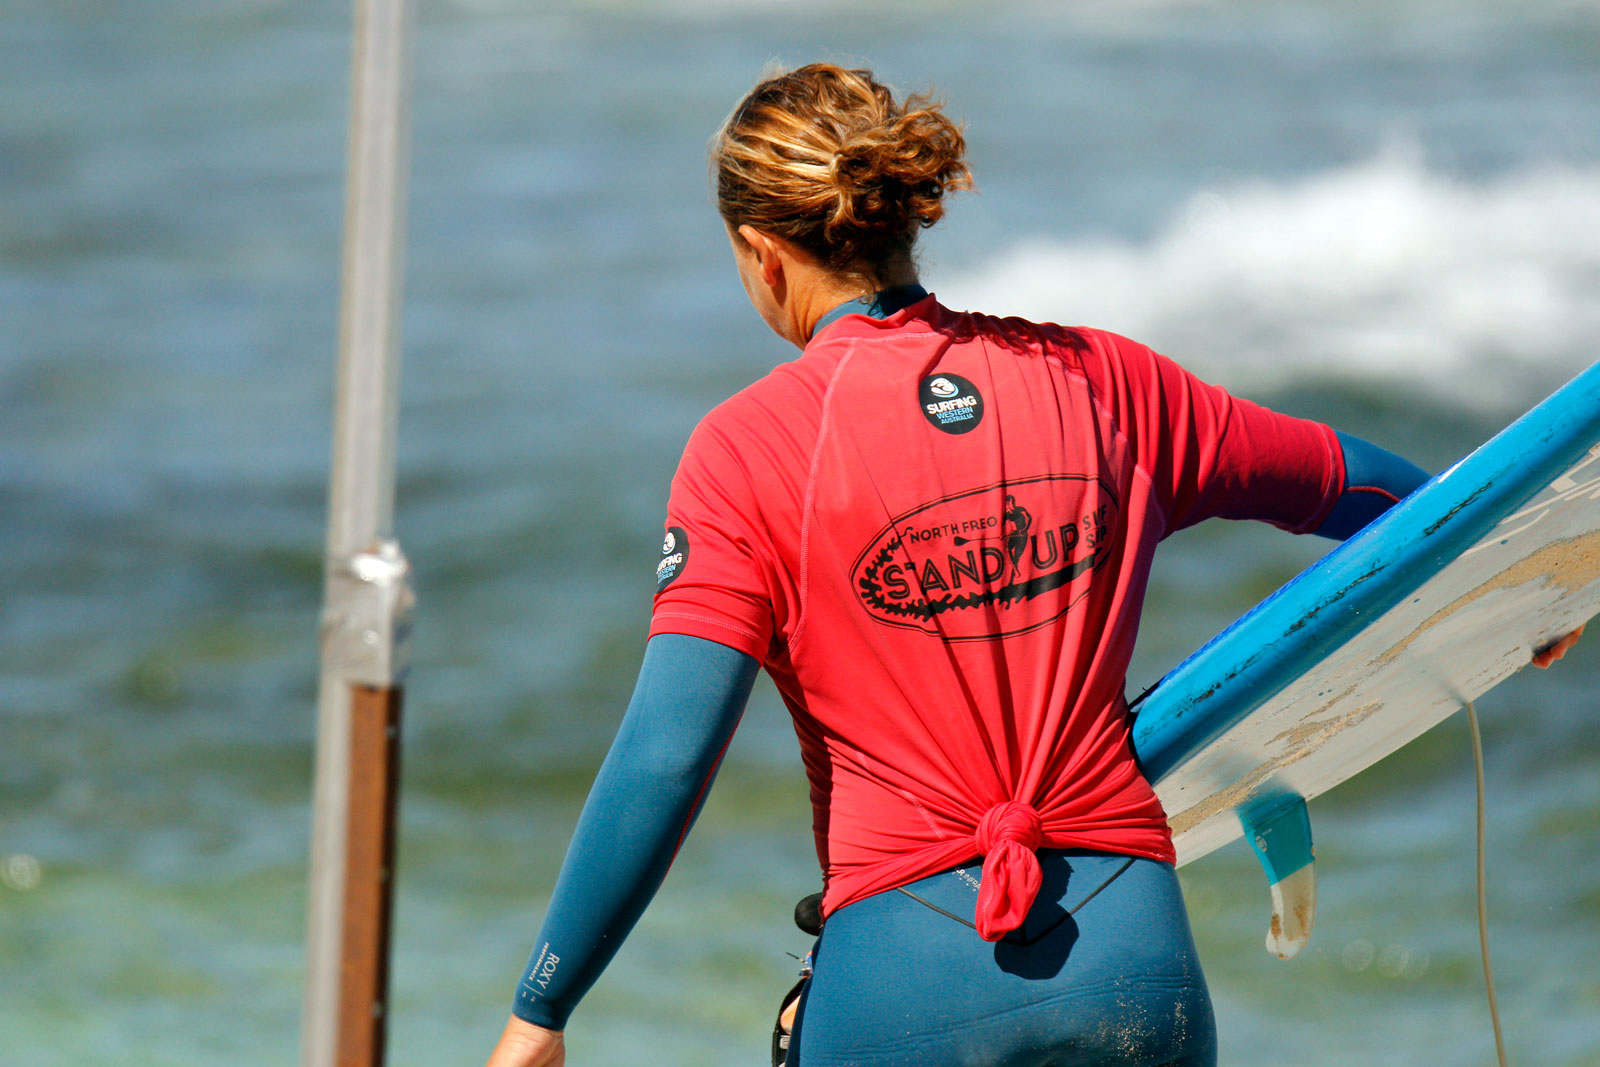 Starboard-SUP-Stand-Up-Paddle-surf-Shakira-Westdorp-Wins-2019-Rottnest-Island-SUP-Classic-Credits-Majeks-red-comp-shirt